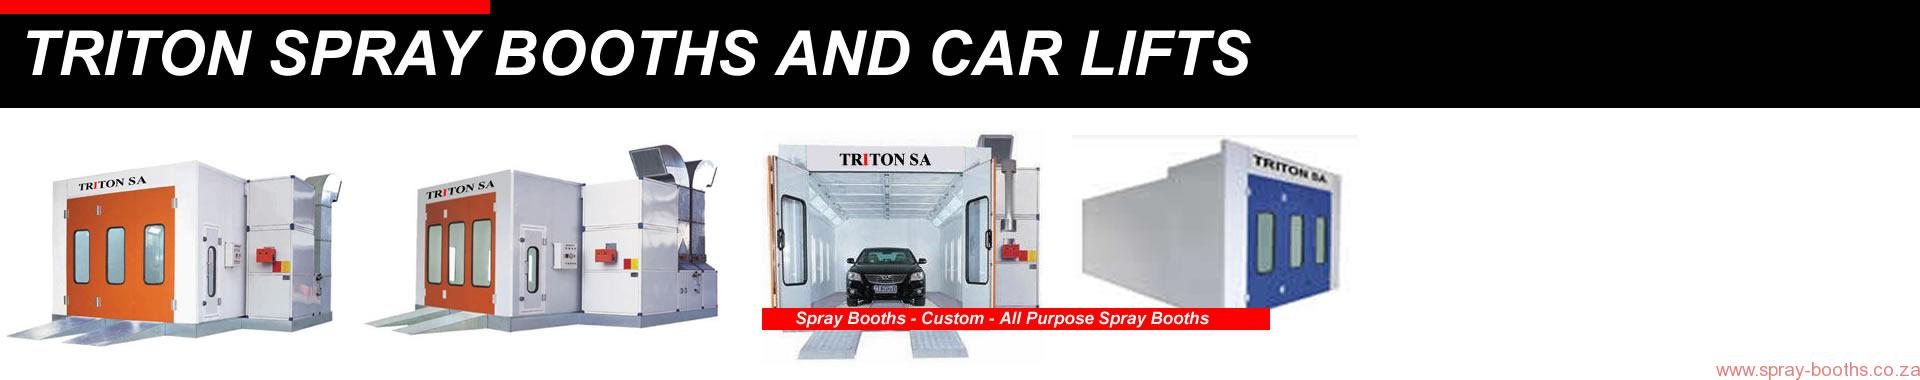 Spray Booth Suppliers Triton car lifts 2 post hoist 021 5562413